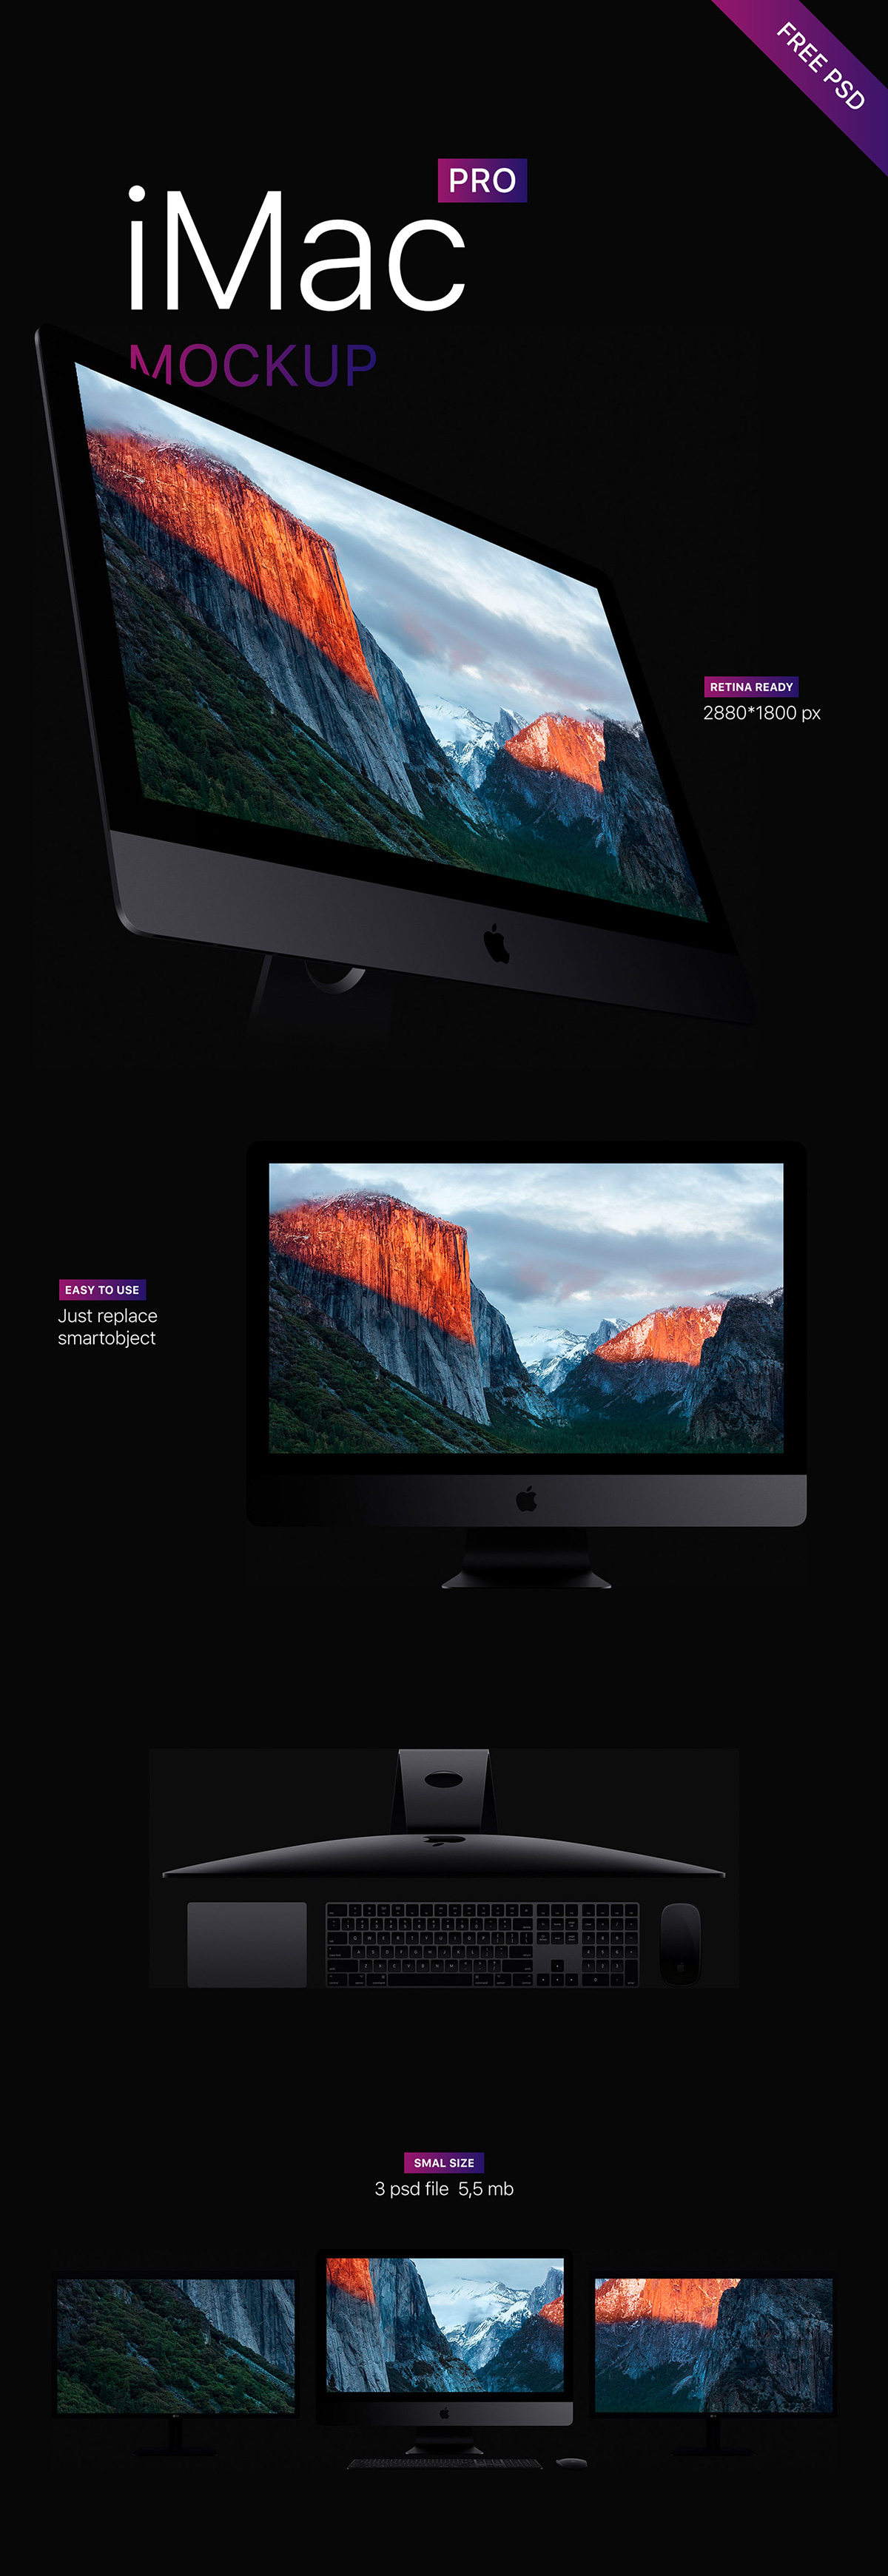 3 iMac Pro Free Mockups 2017 - Download for Free - 3 files